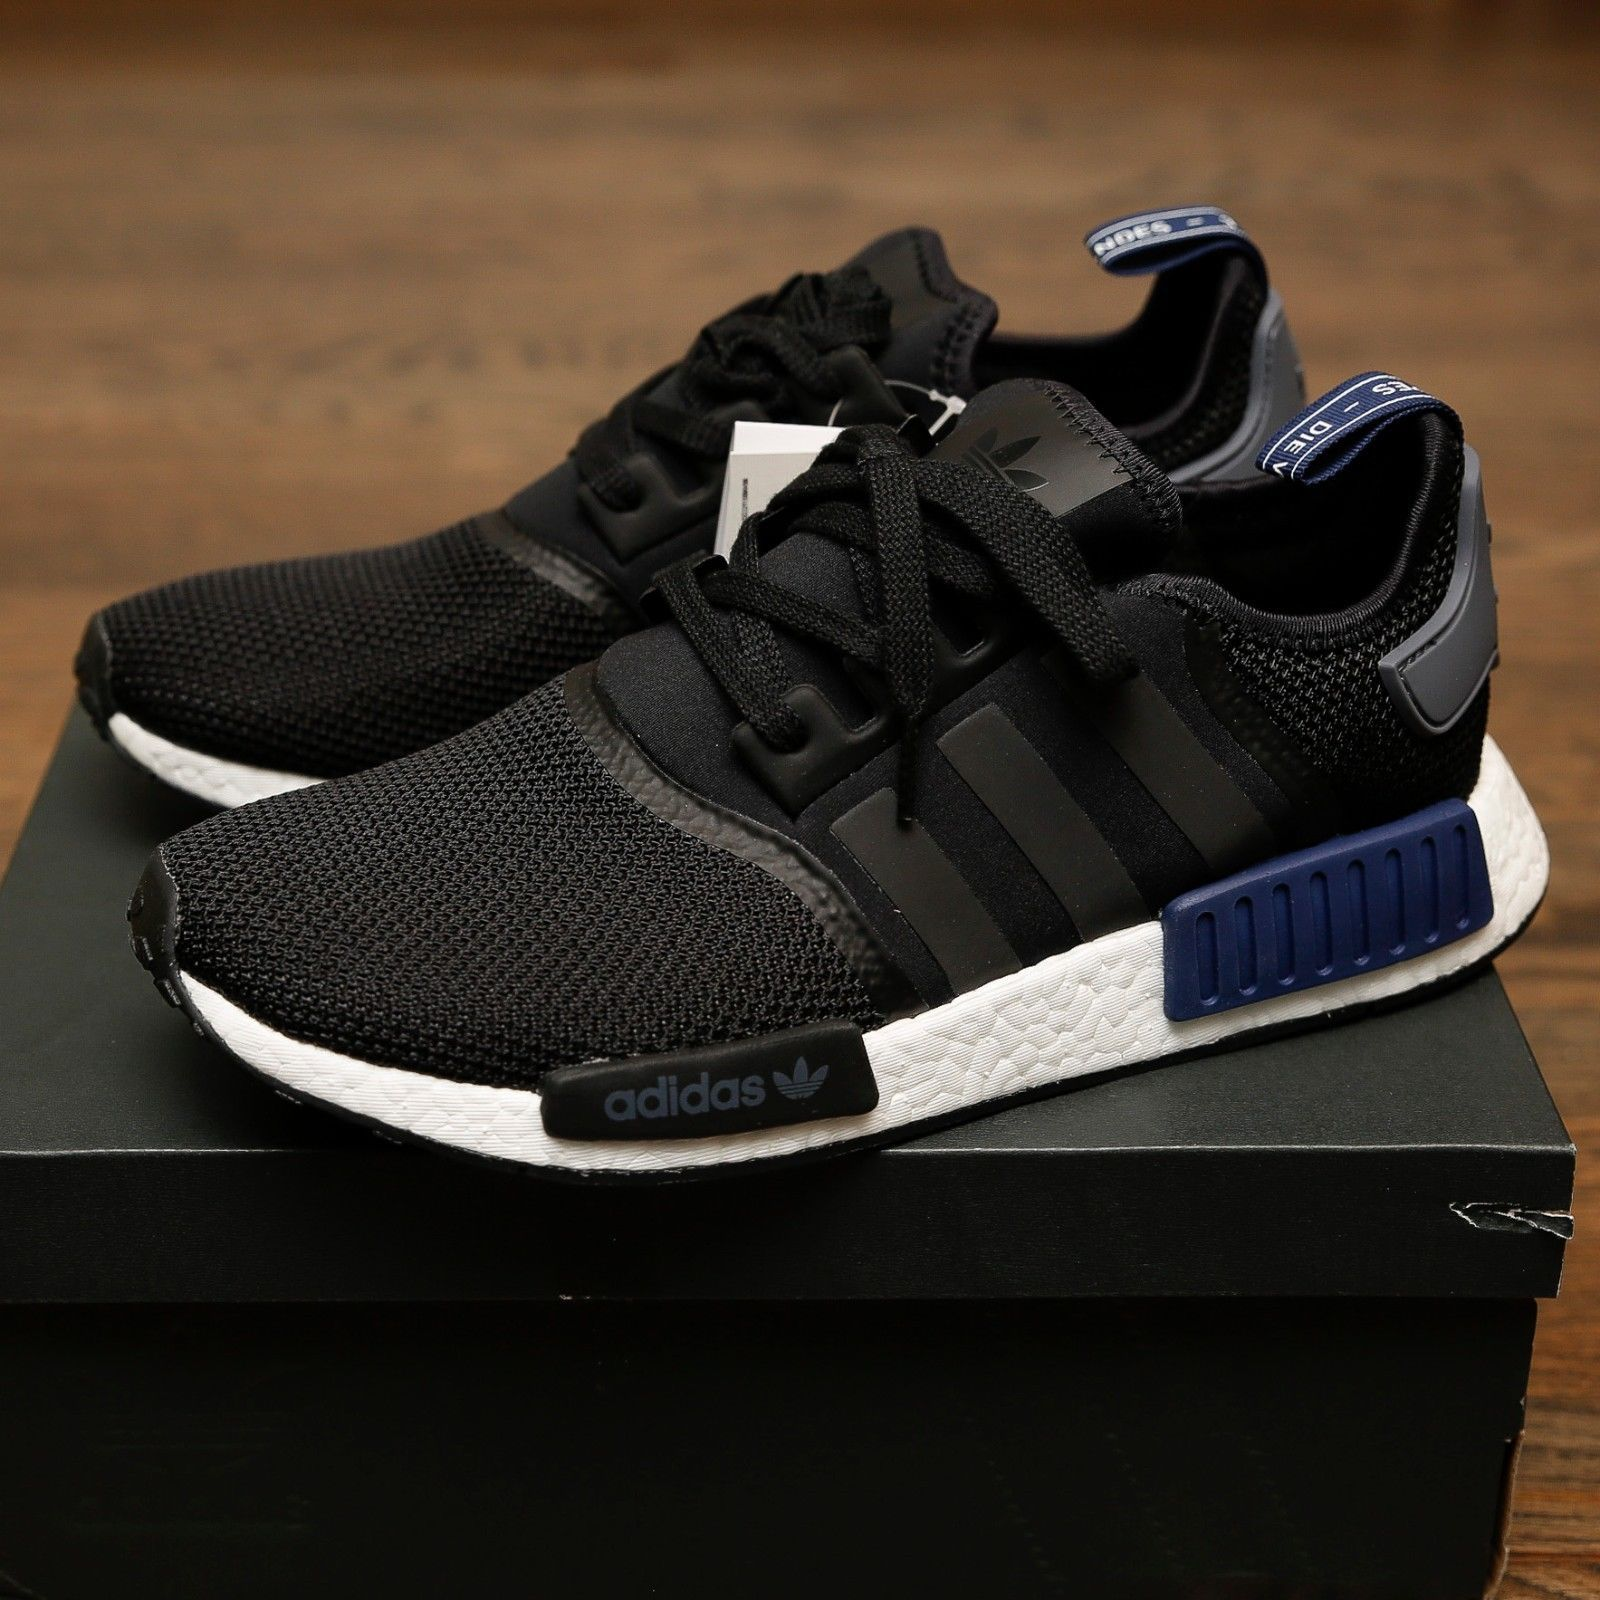 2a432966d Adidas NMD R1 Black Navy Grey Euro 100% Authentic JD primeknit S76841